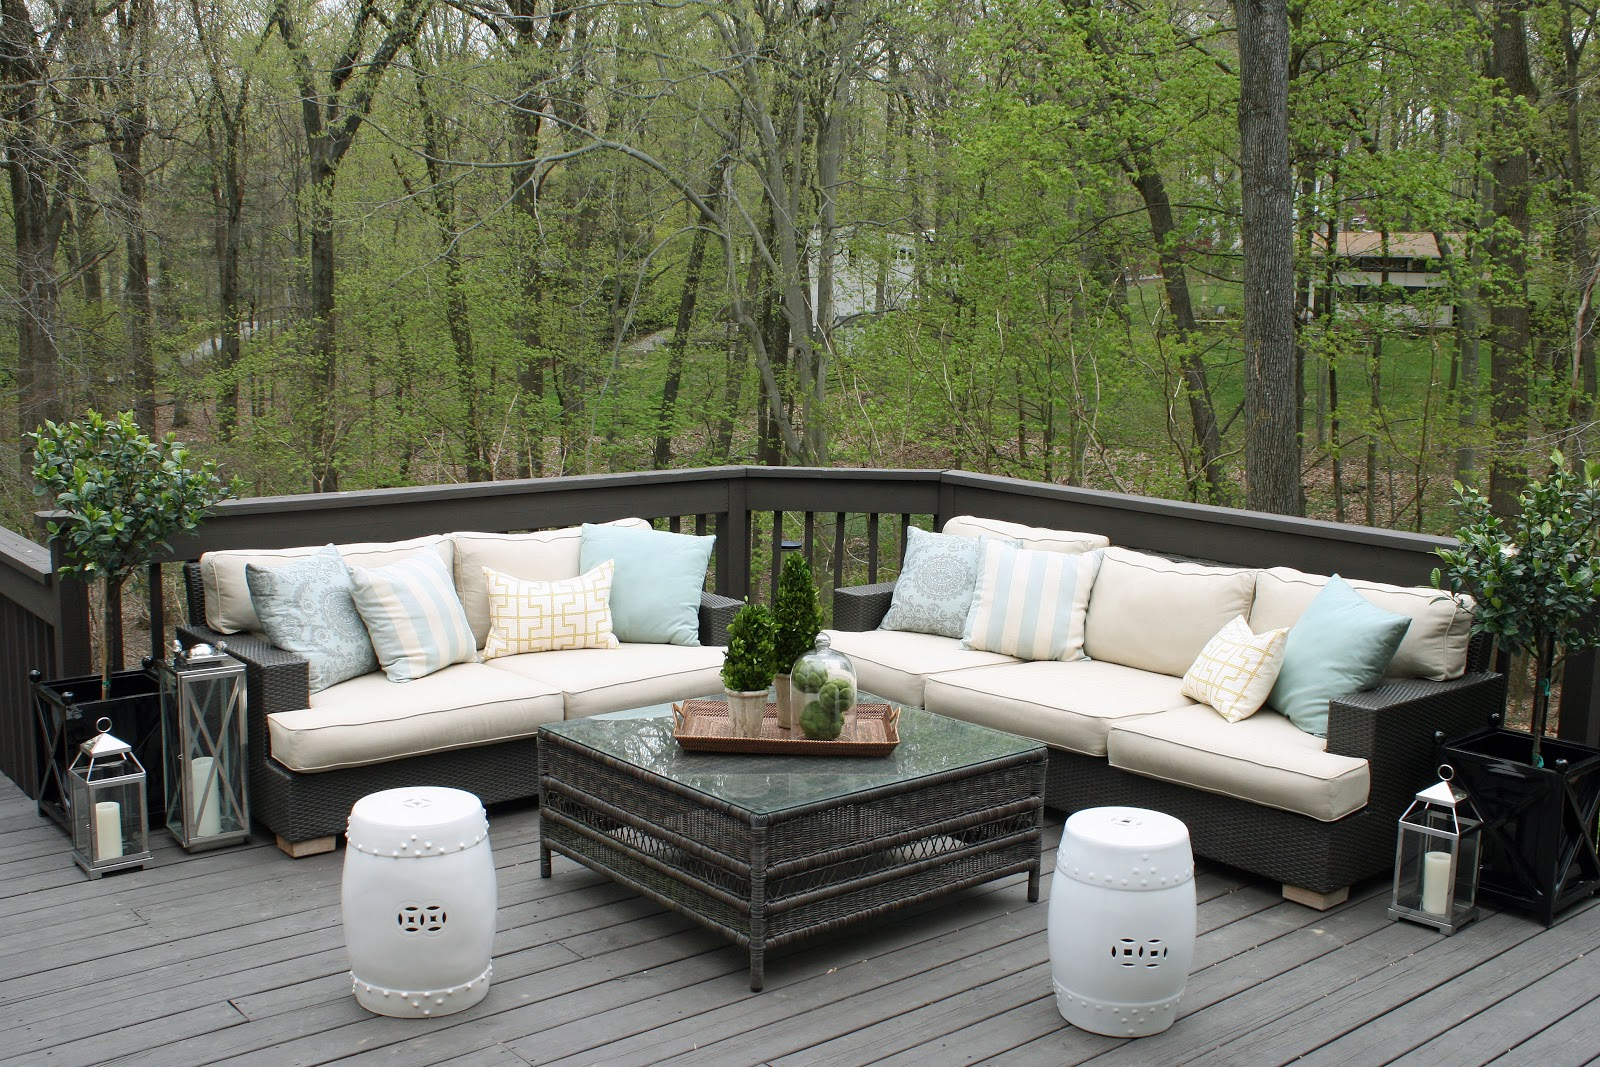 Stephanie Kraus Designs Need Some Inspiration For Your Outdoor Space